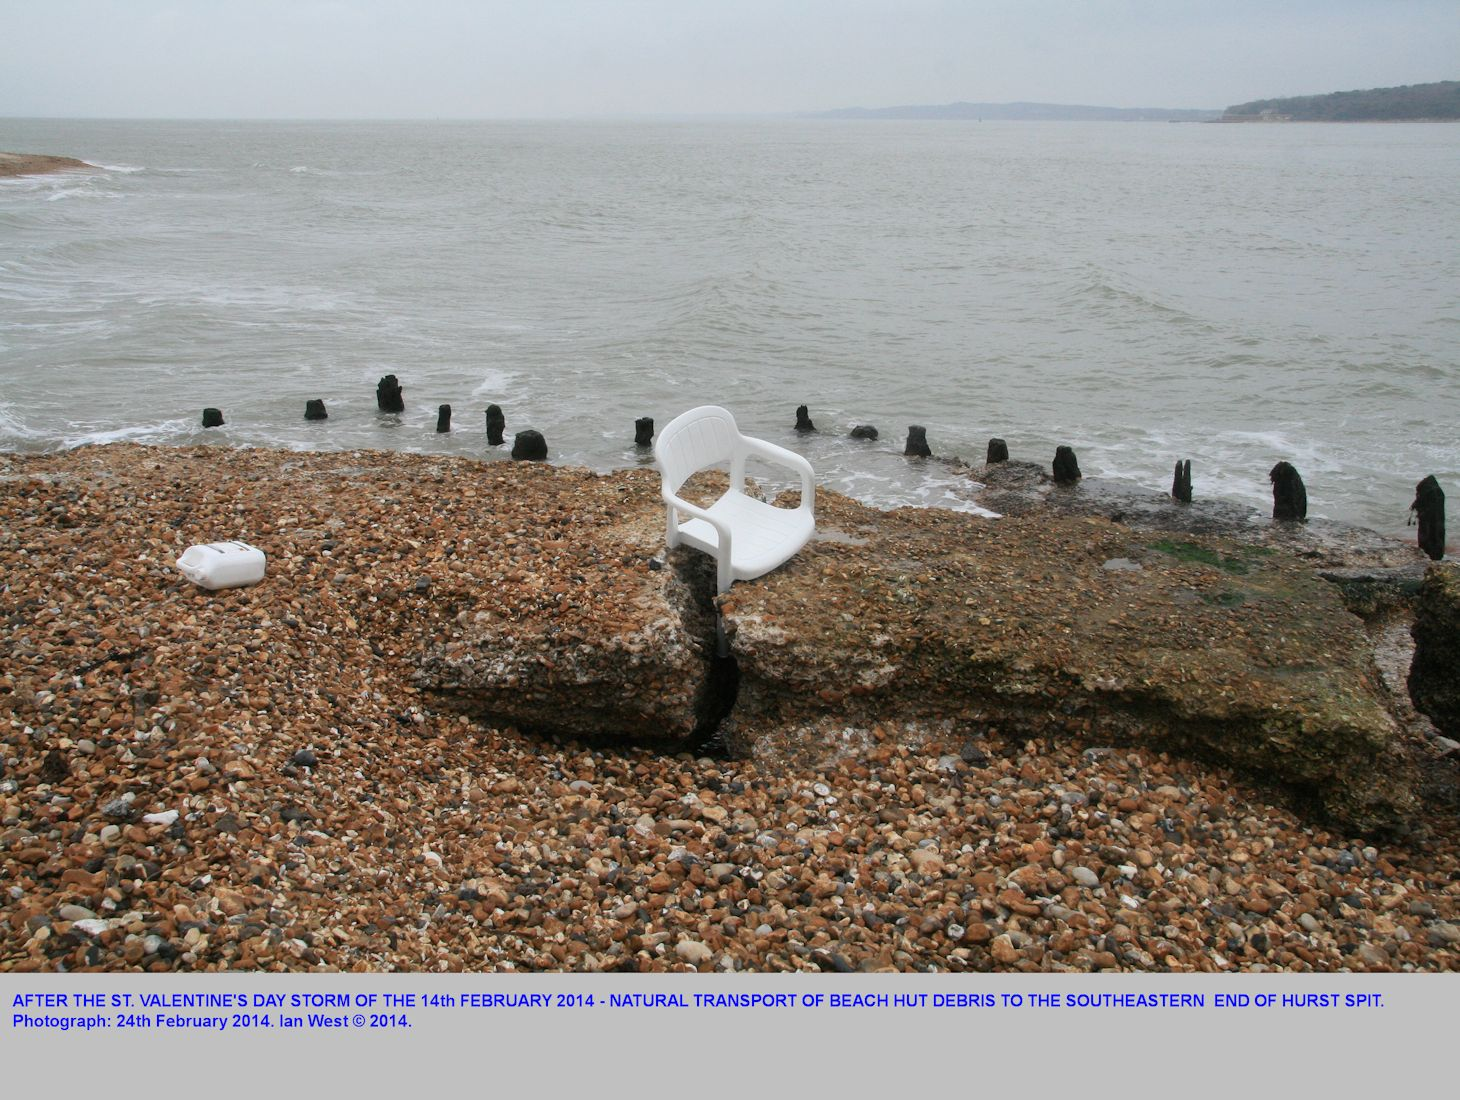 Beach hut debris, including plastic chairs, have been transported by the St. Valentine's Day Storm along Hurst Spit, Hampshire, even to the southeastern end